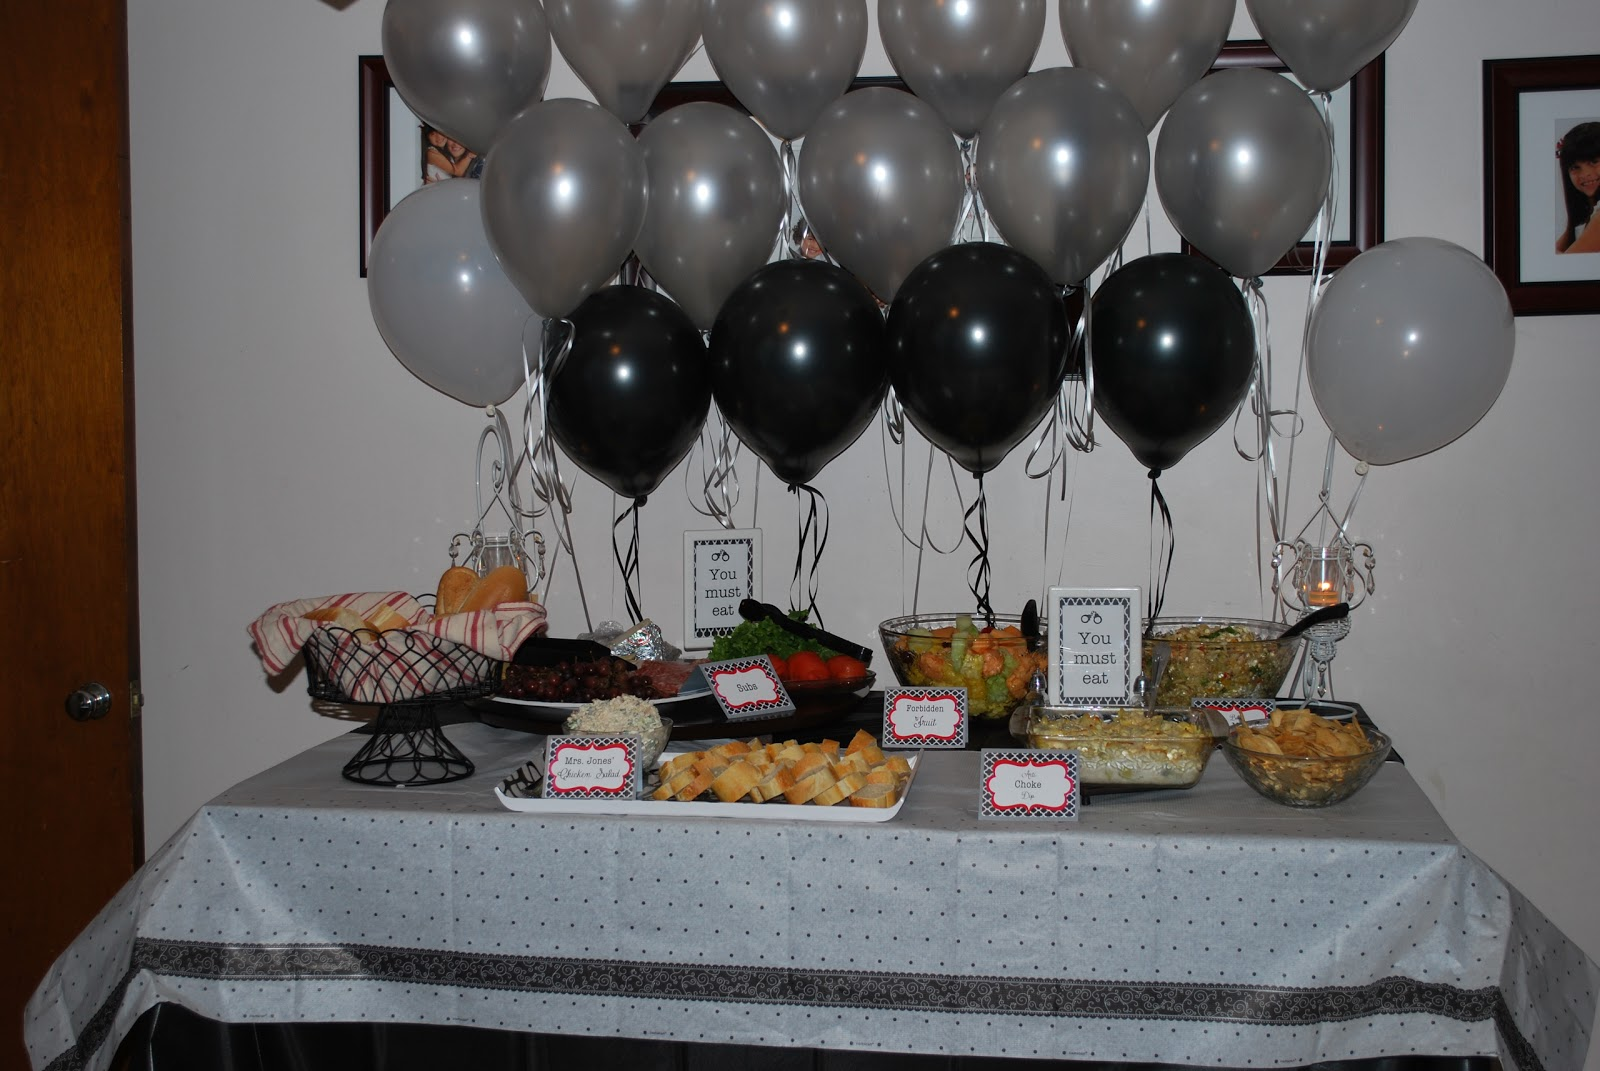 whimsy & wise events: {fifty shades of grey party} and free party